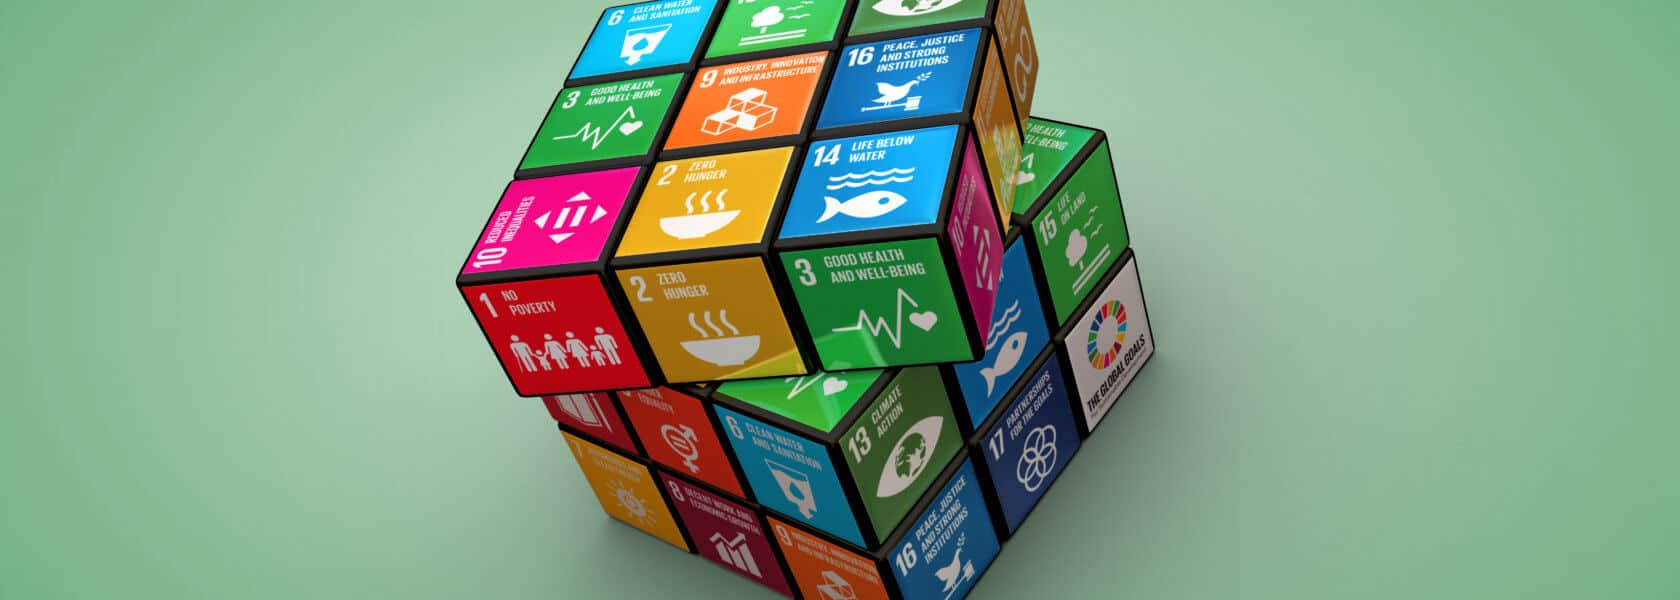 Lead2030 Challenges For SDG Oriented Projects